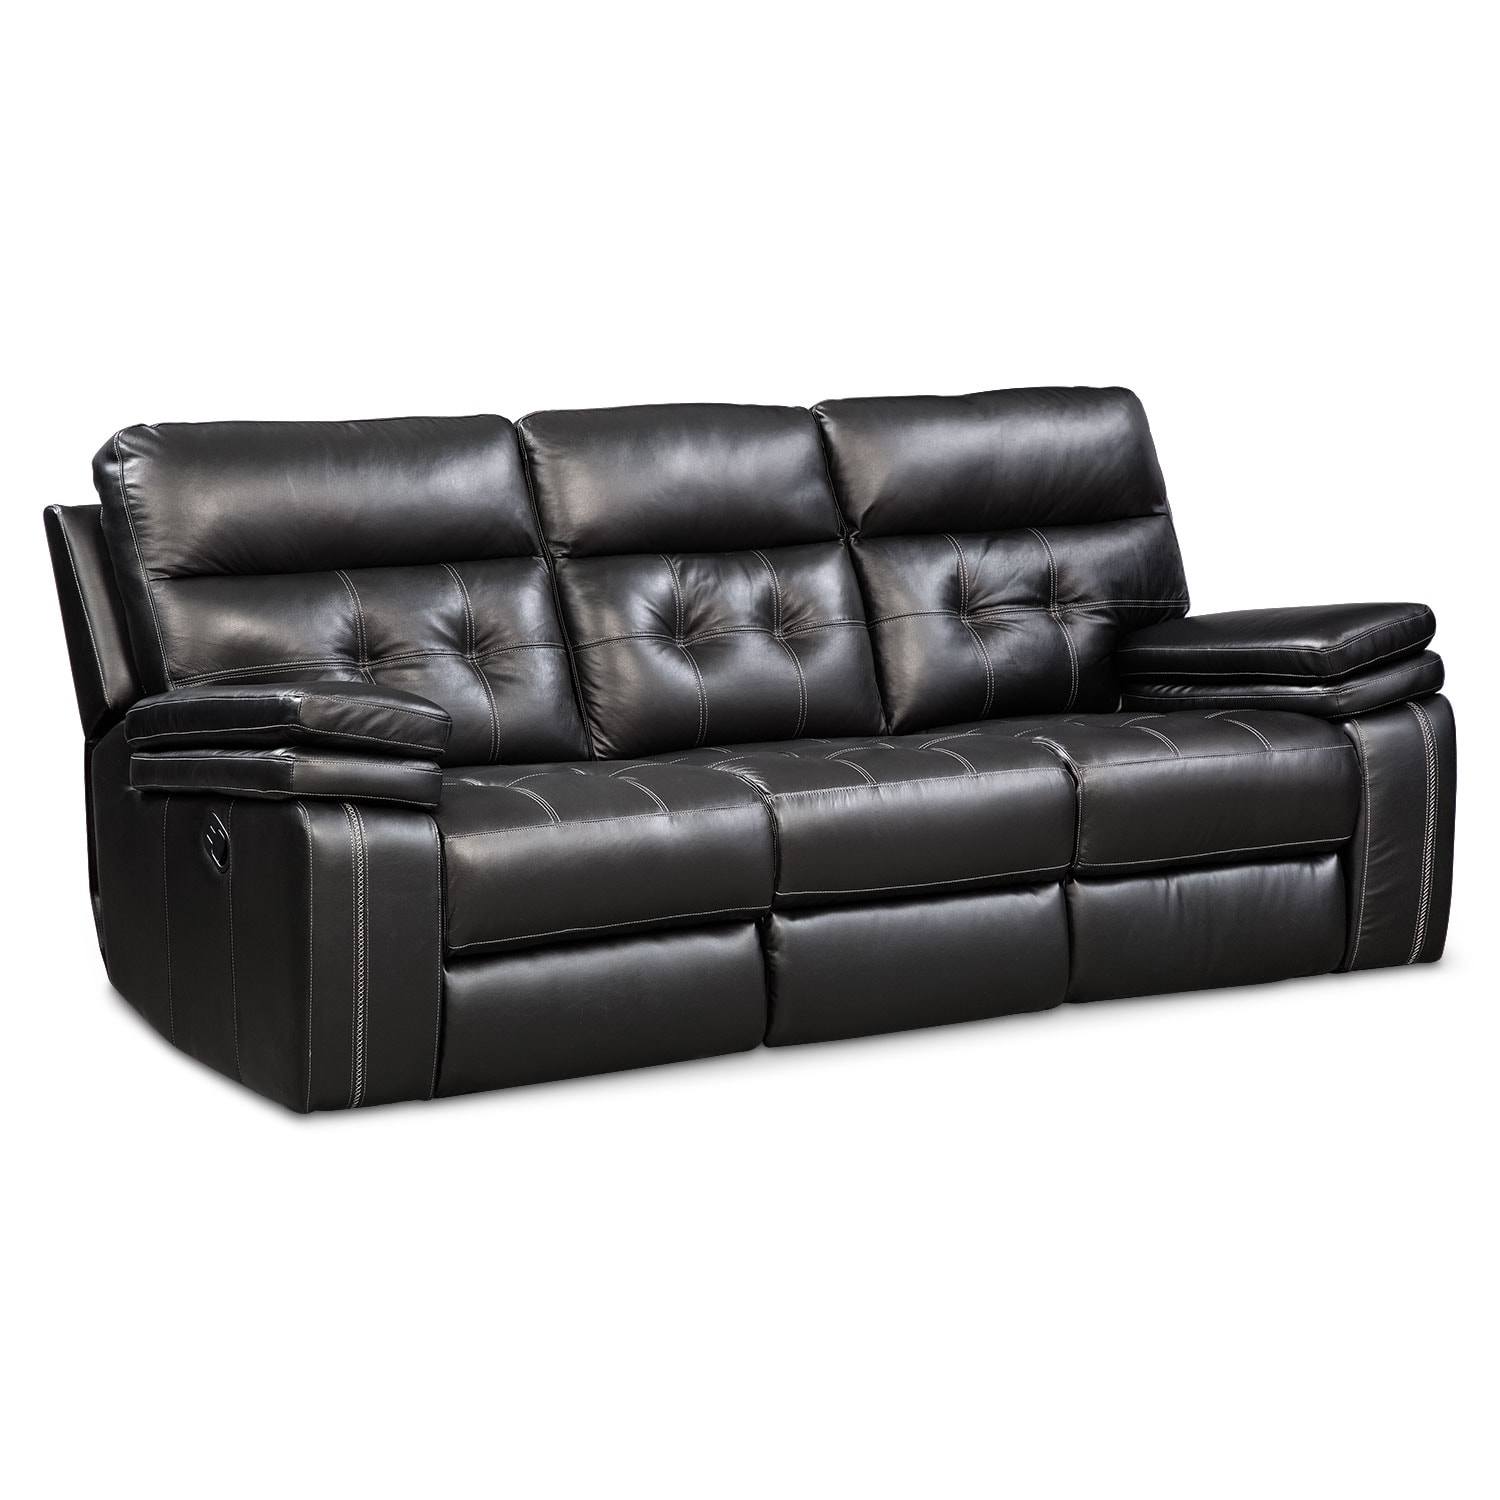 Living Room Furniture - Brisco Manual Reclining Sofa